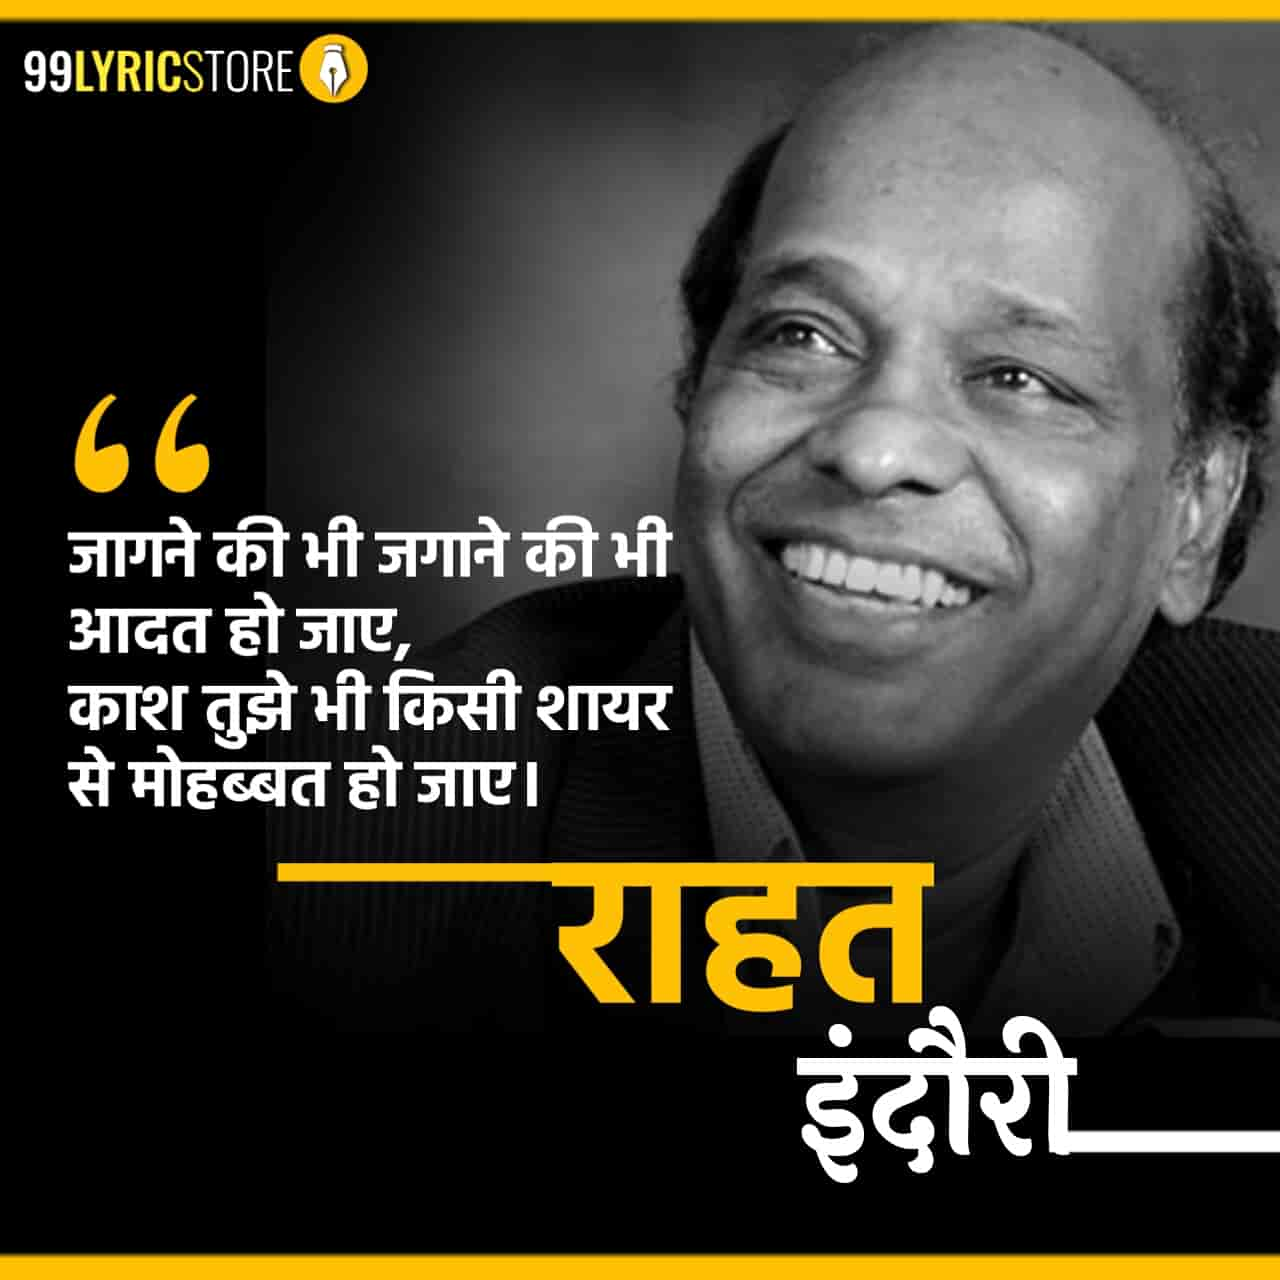 This beautiful ghazal 'Jaagne Ki Bhi Jagaane Ki Bhi Aadat Ho Jaaye' has written by Rahat Indori.